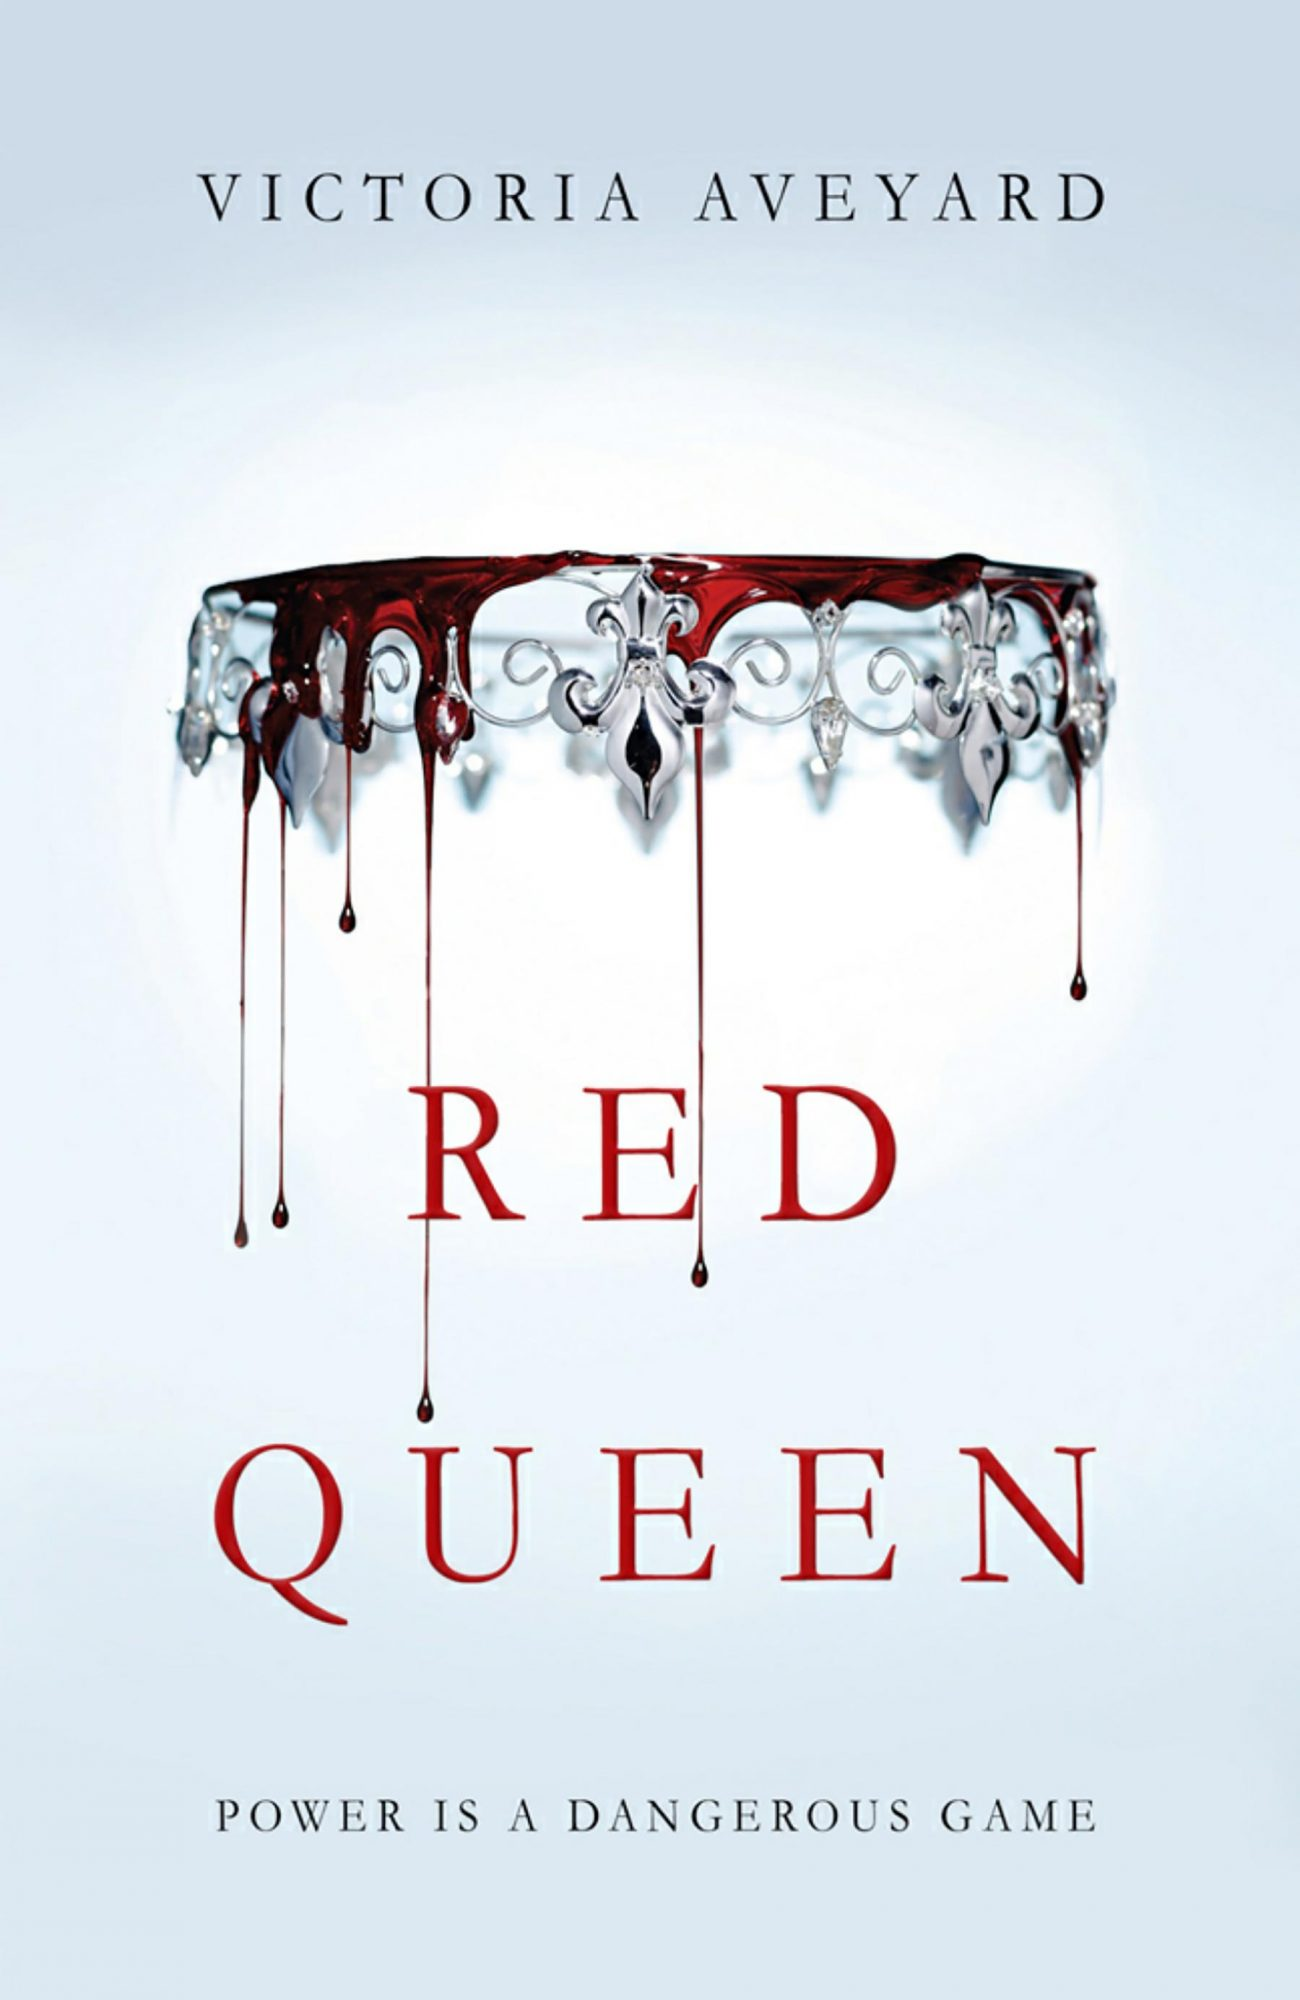 Victoria Aveyard, The Red Queen